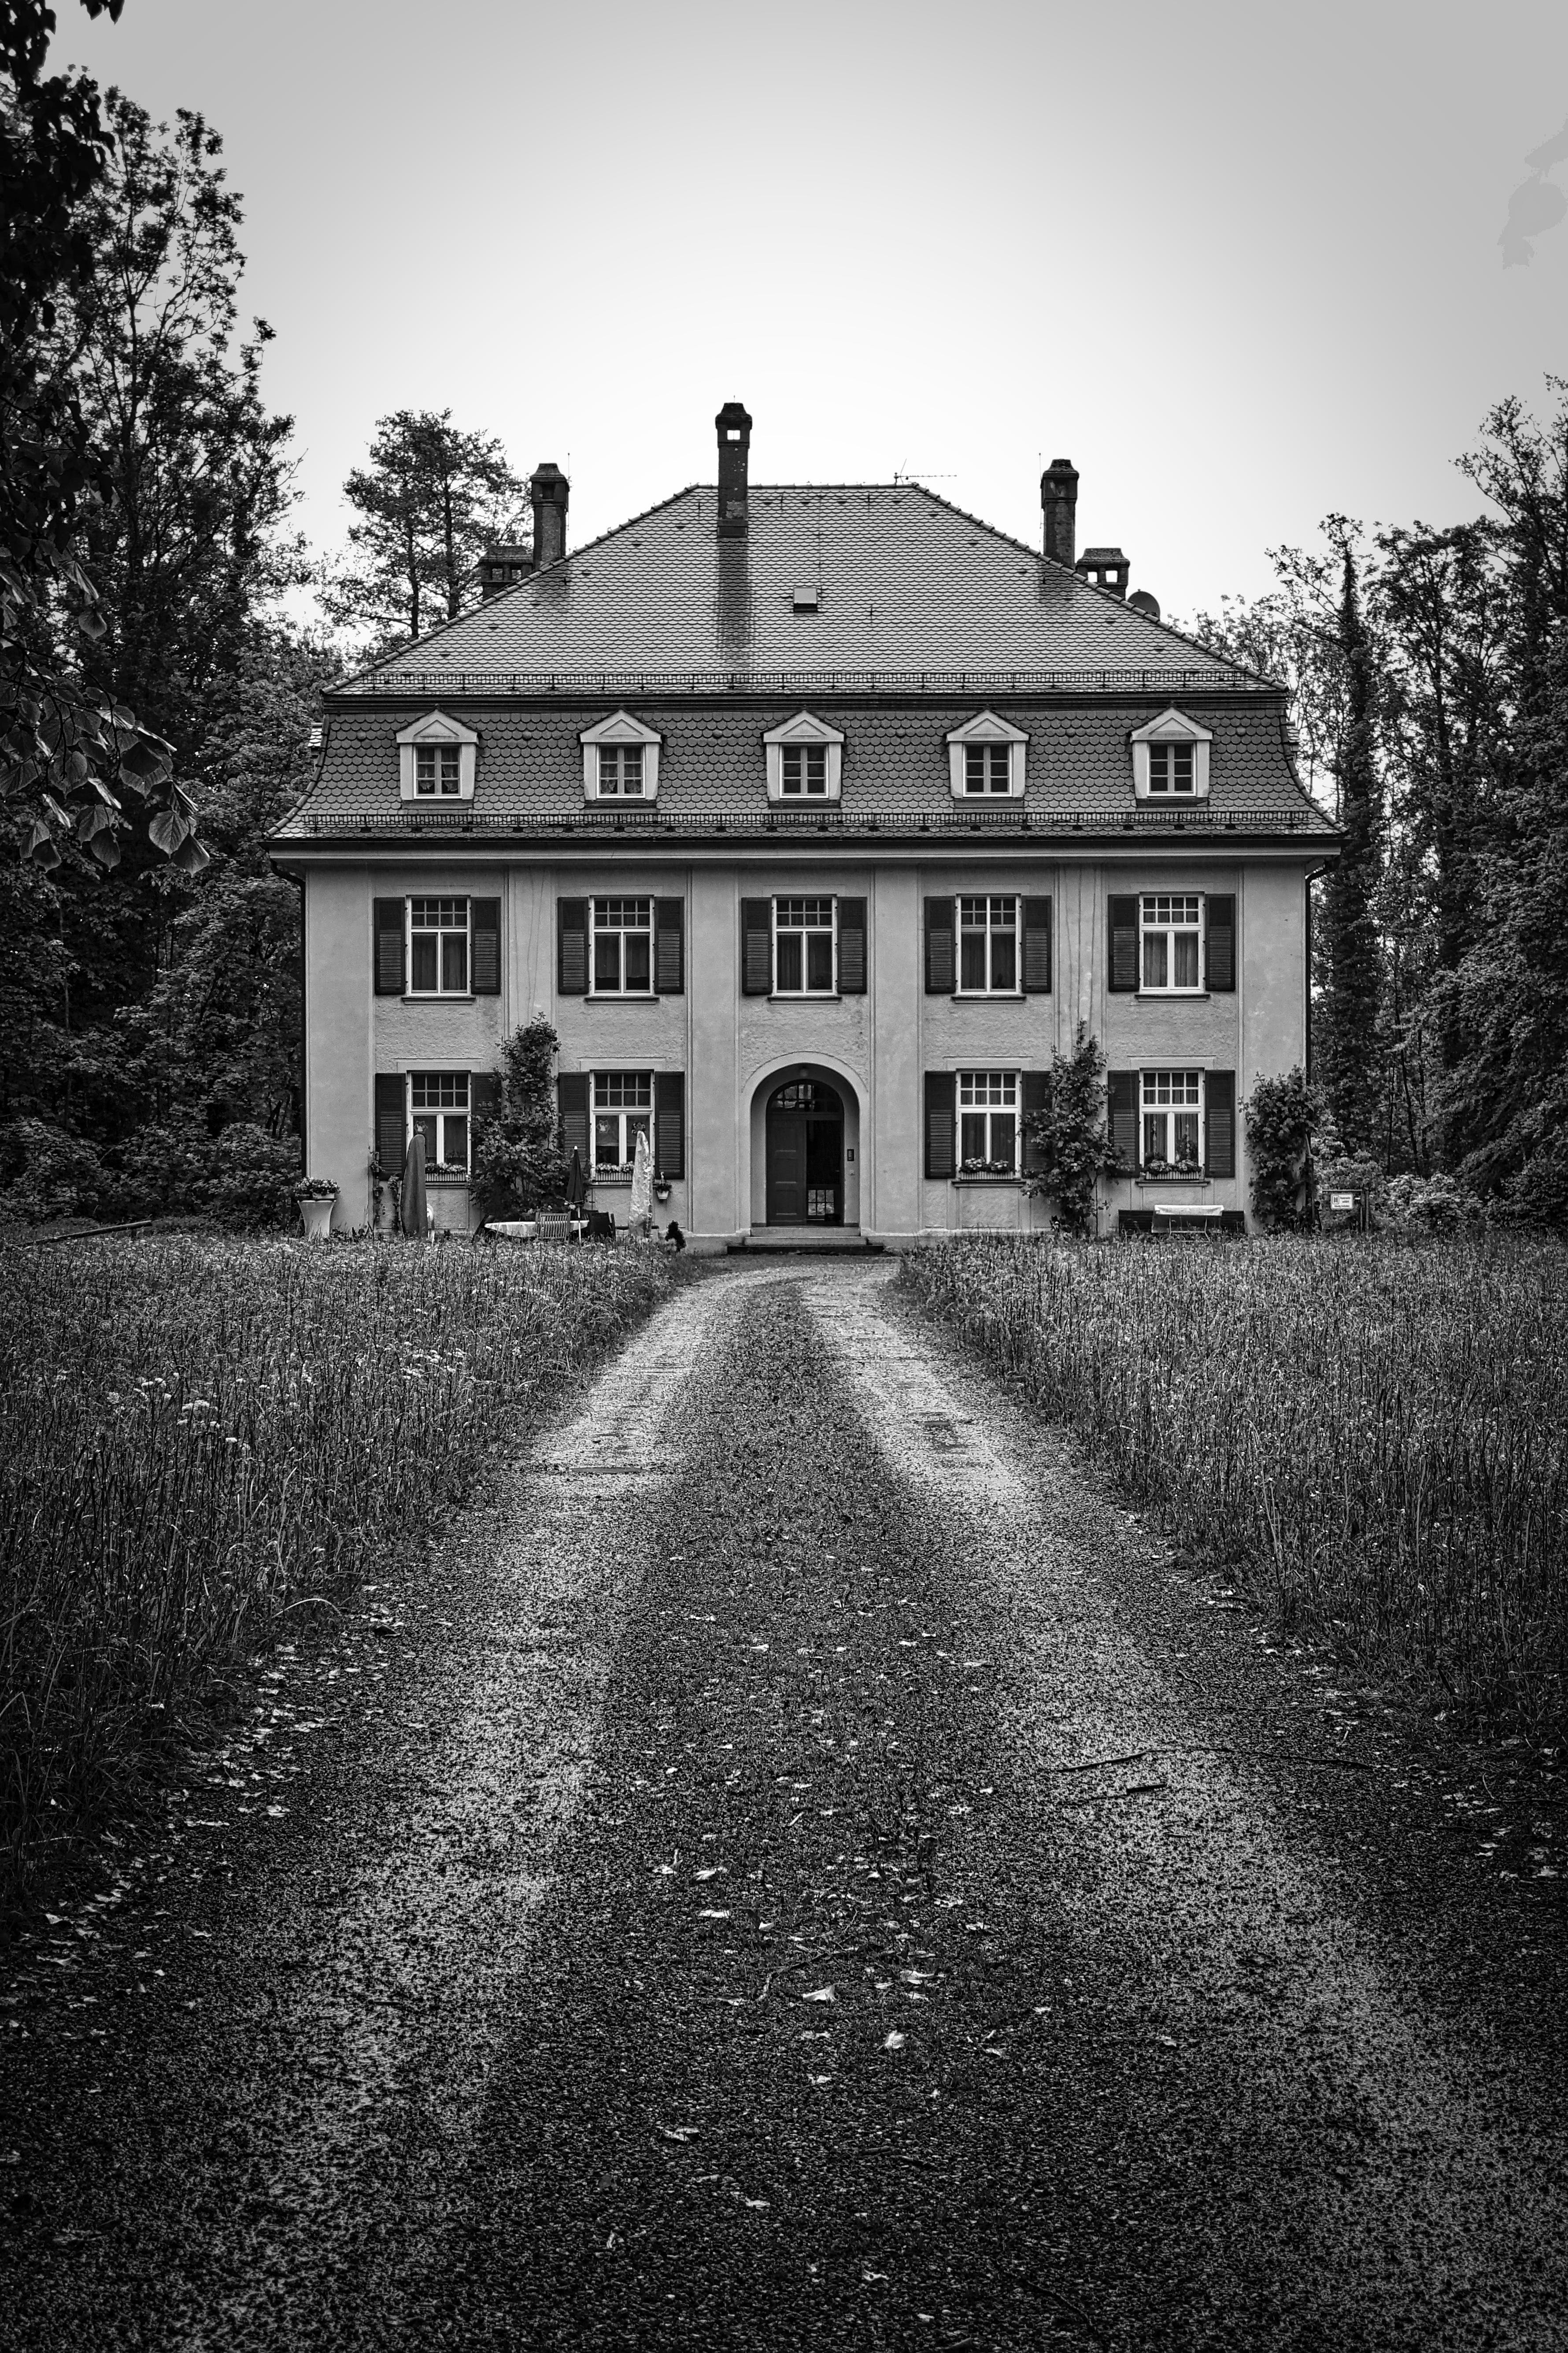 3-story House Surrounded by Trees Grayscale Photography